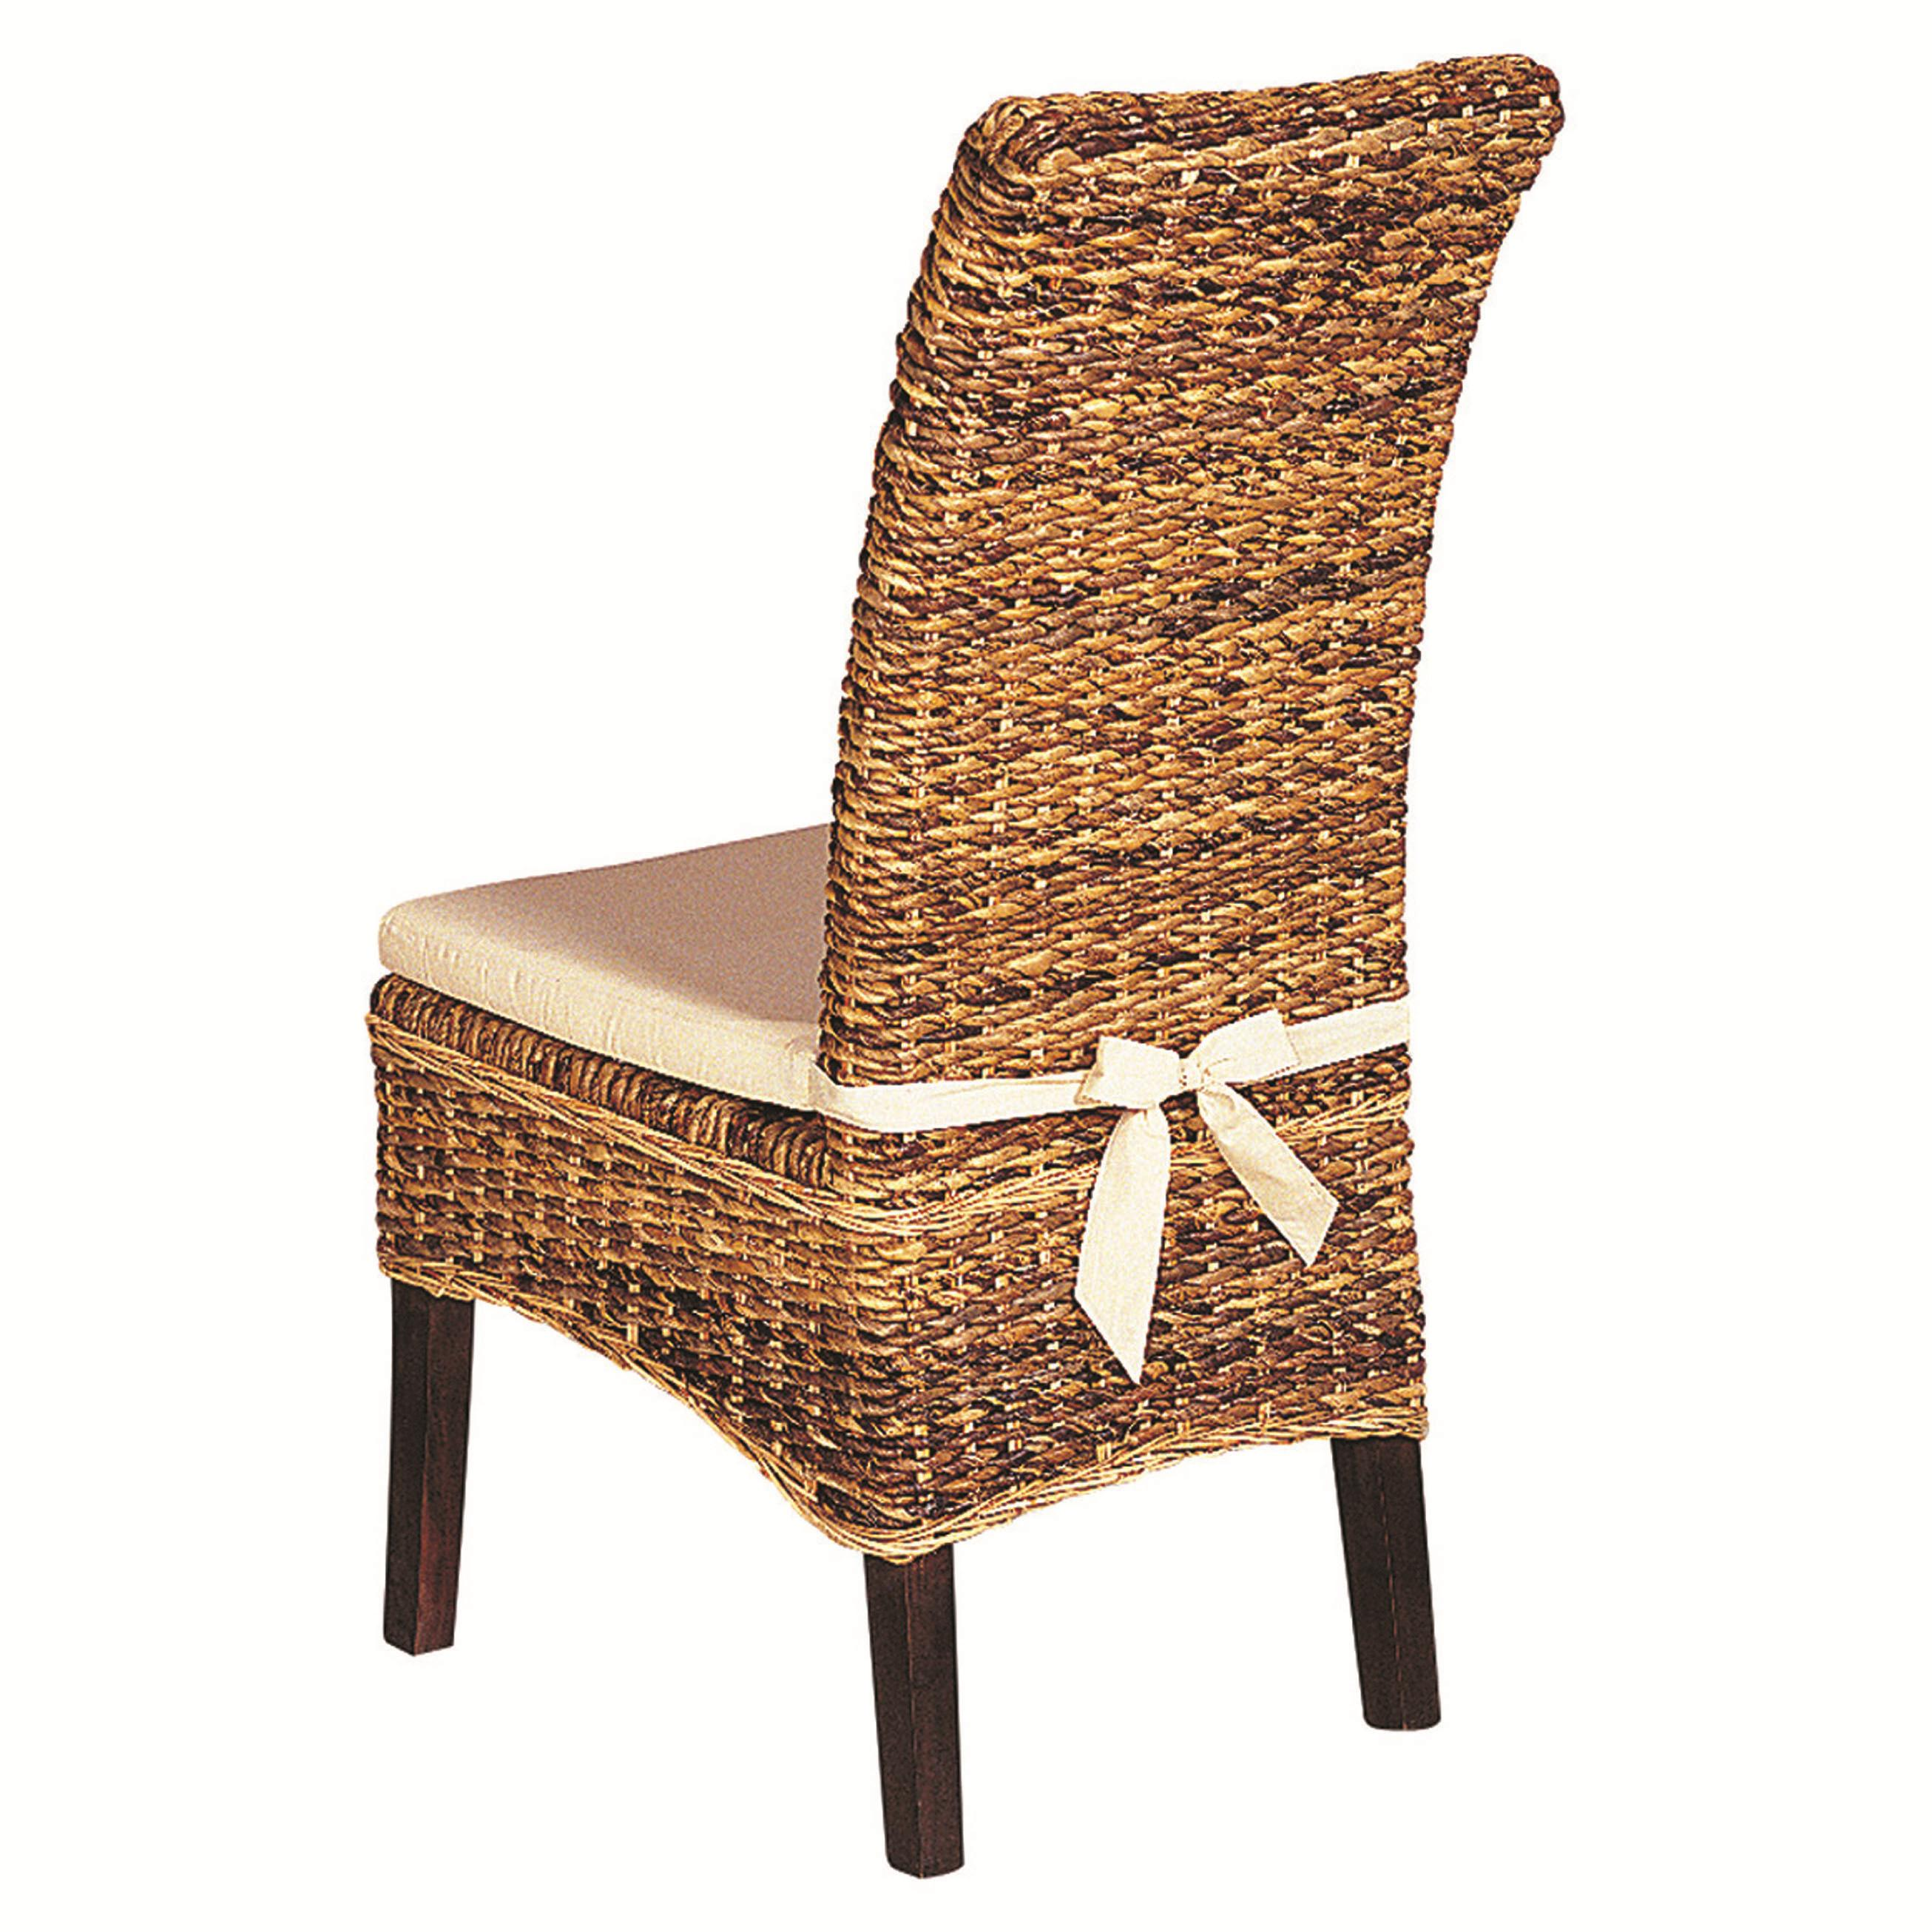 Four Hands Grass Roots Banana Leaf Chair with Cushion - Item Number: JCHR-B1